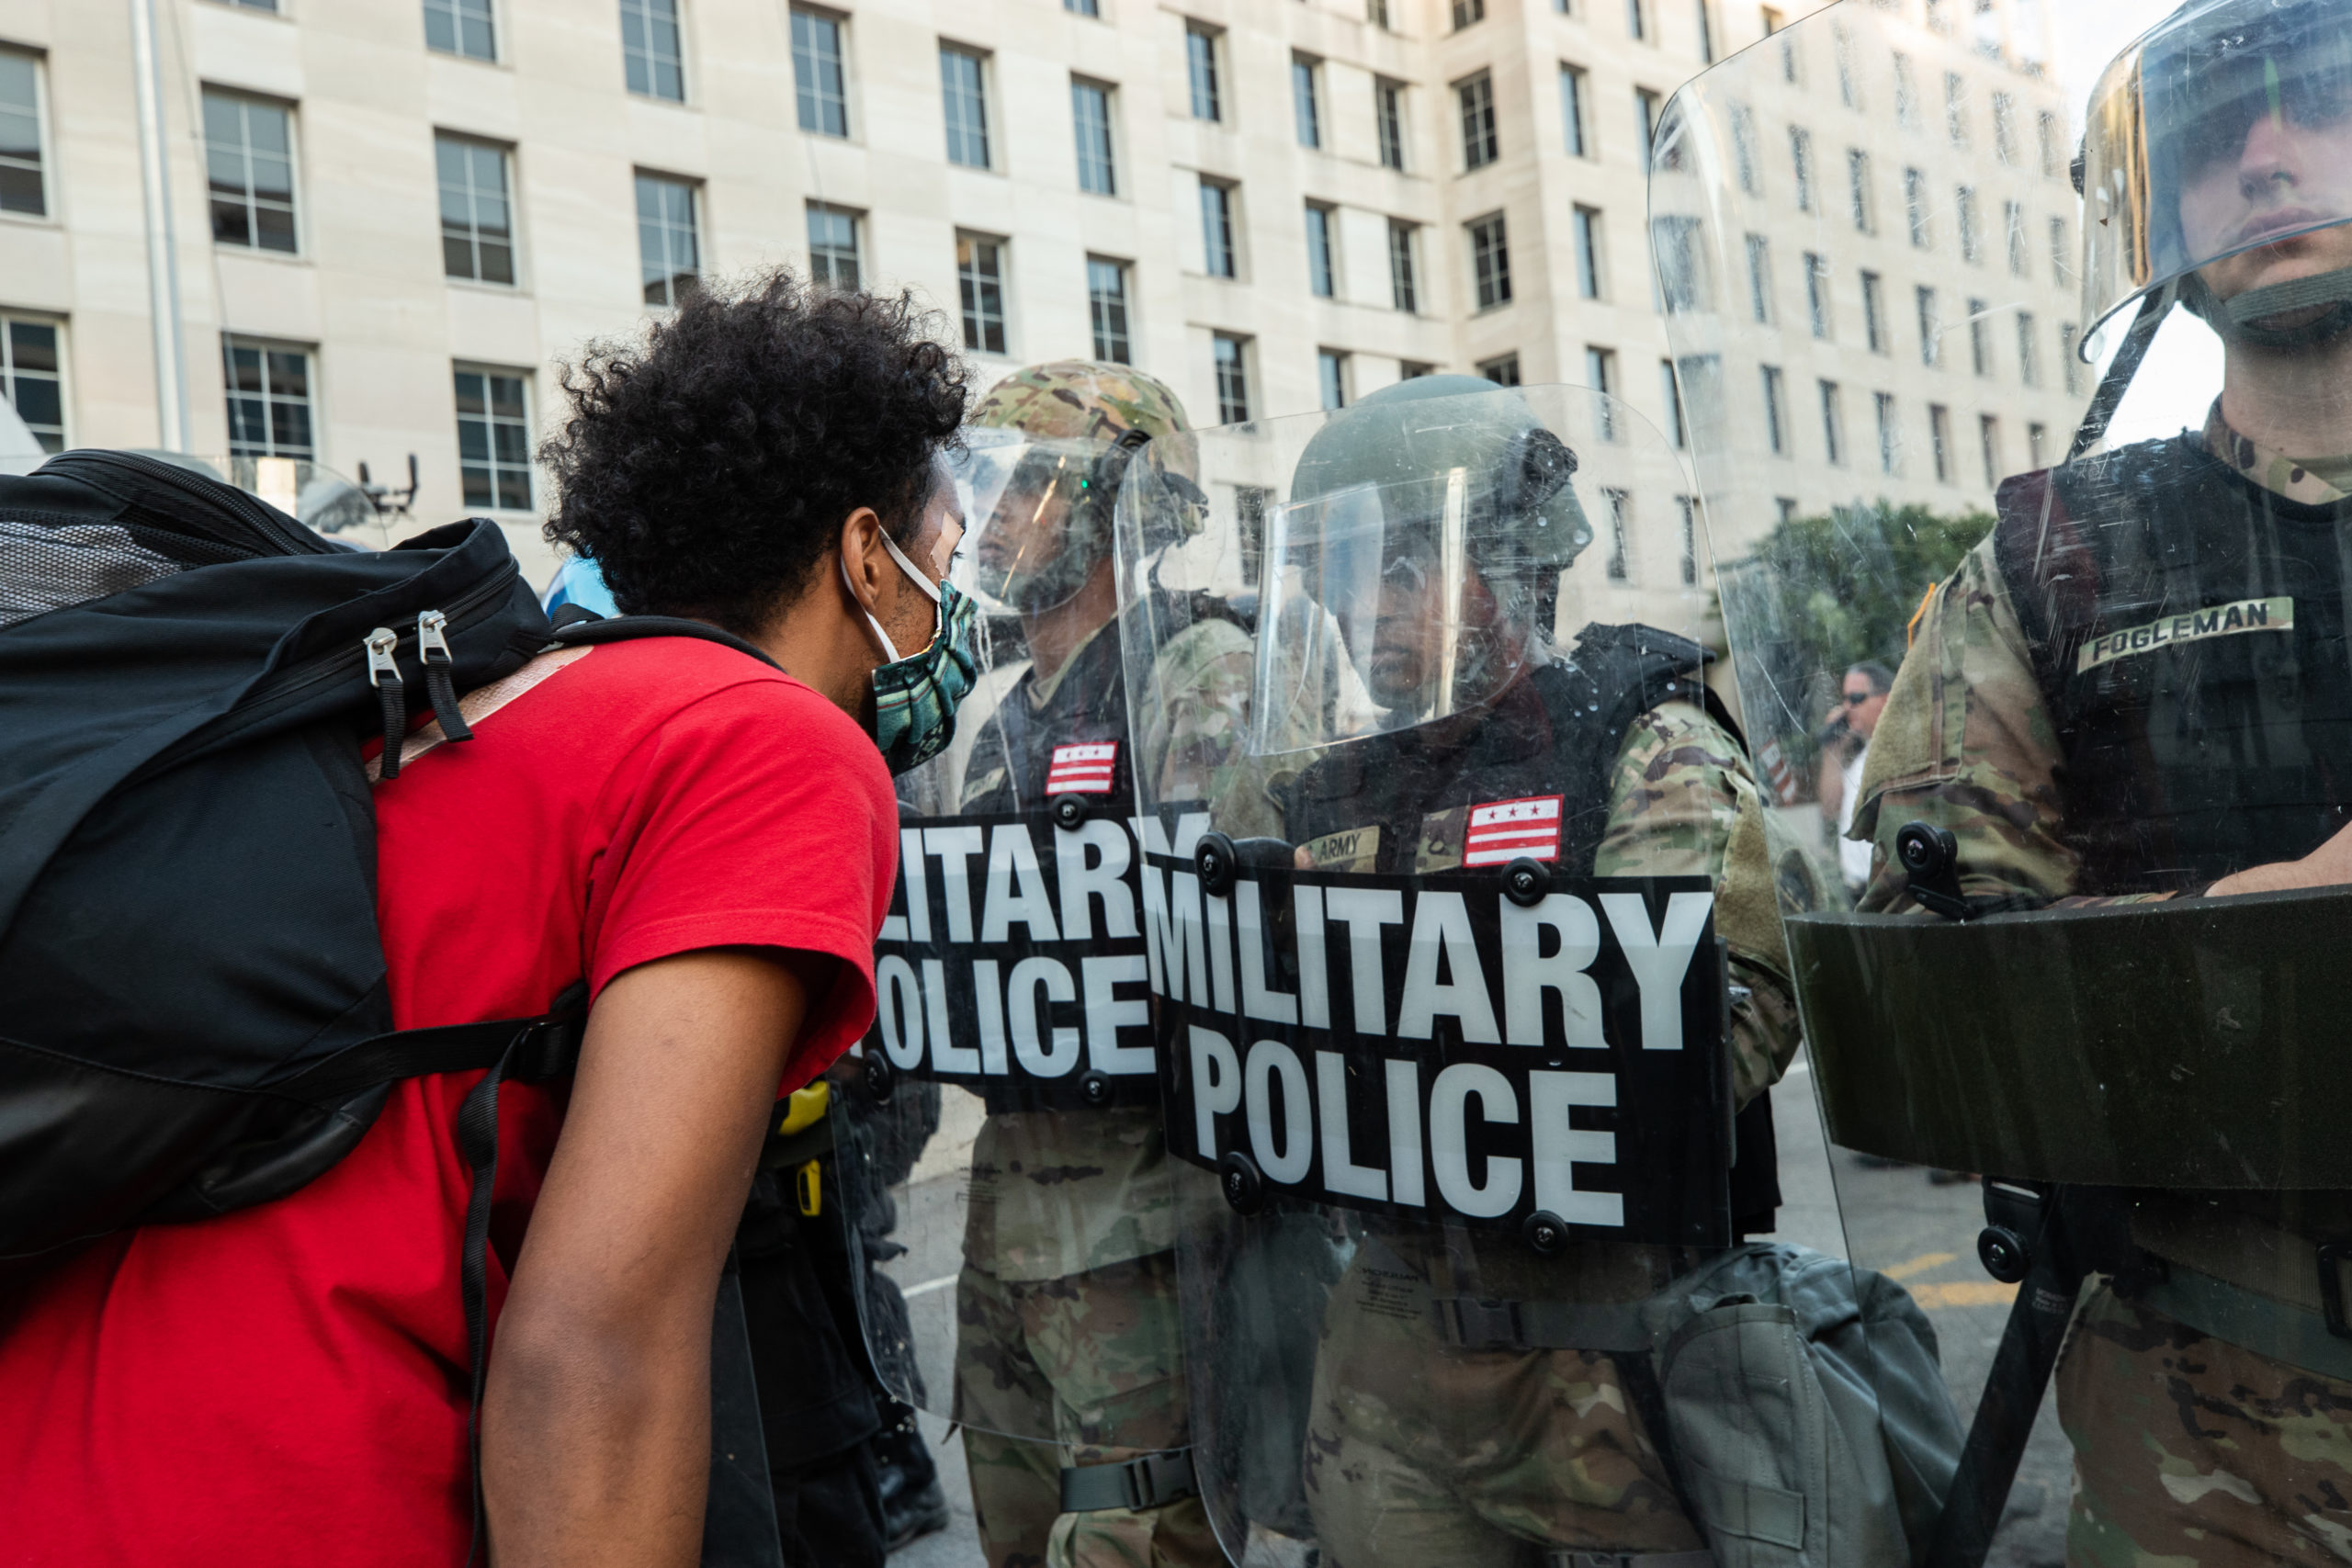 A protester confronts police officials in Washington, D.C. on June 1, 2020. (Kaylee Greenlee - DCNF)